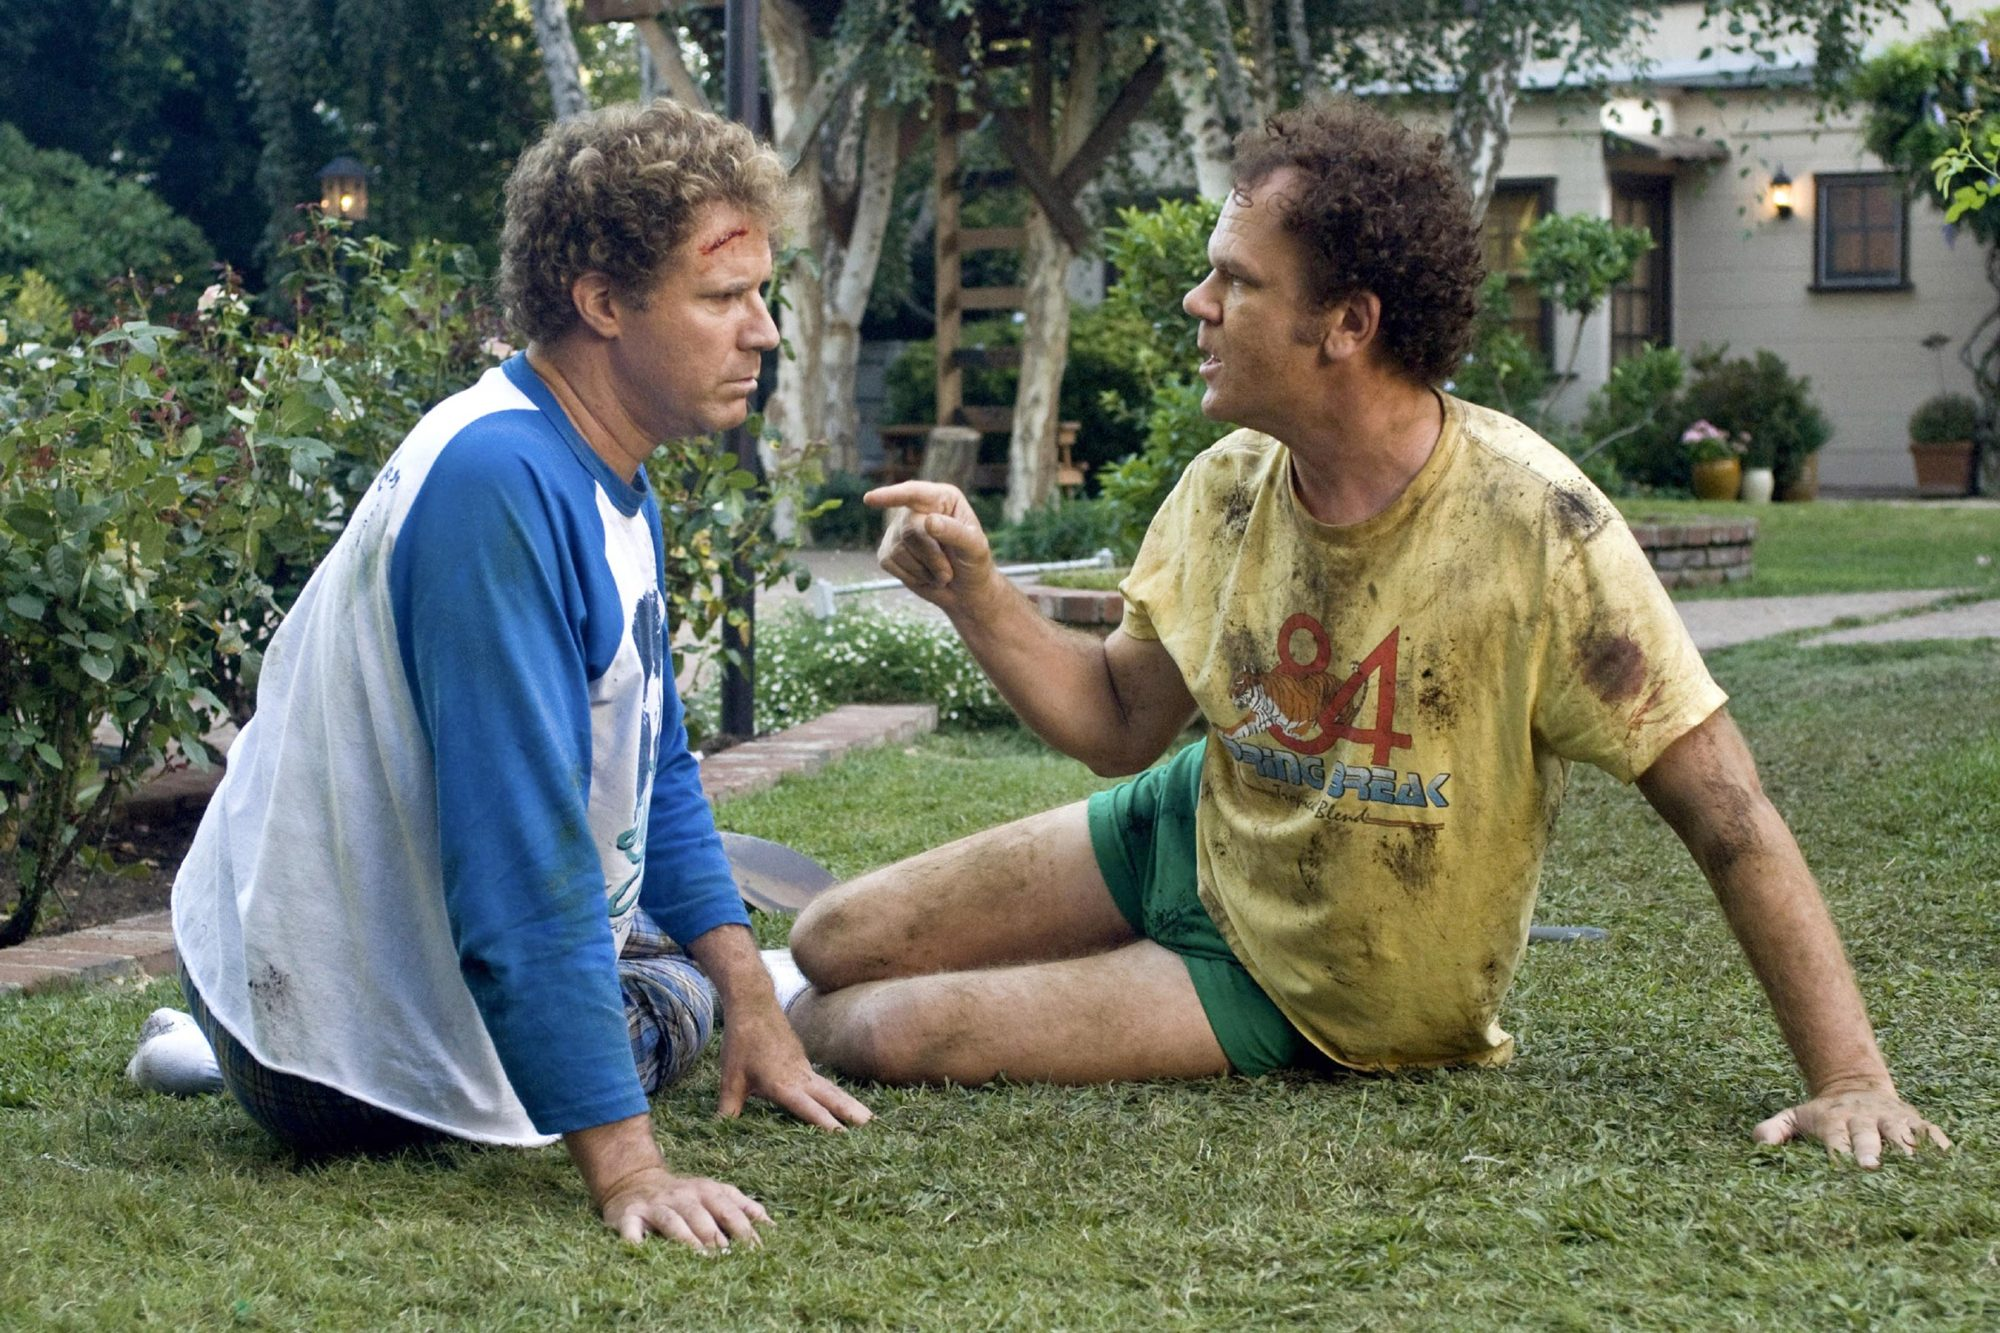 STEP BROTHERS, from left: Will Ferrell, John C. Reilly, 2008, © Columbia/courtesy Everett Collection